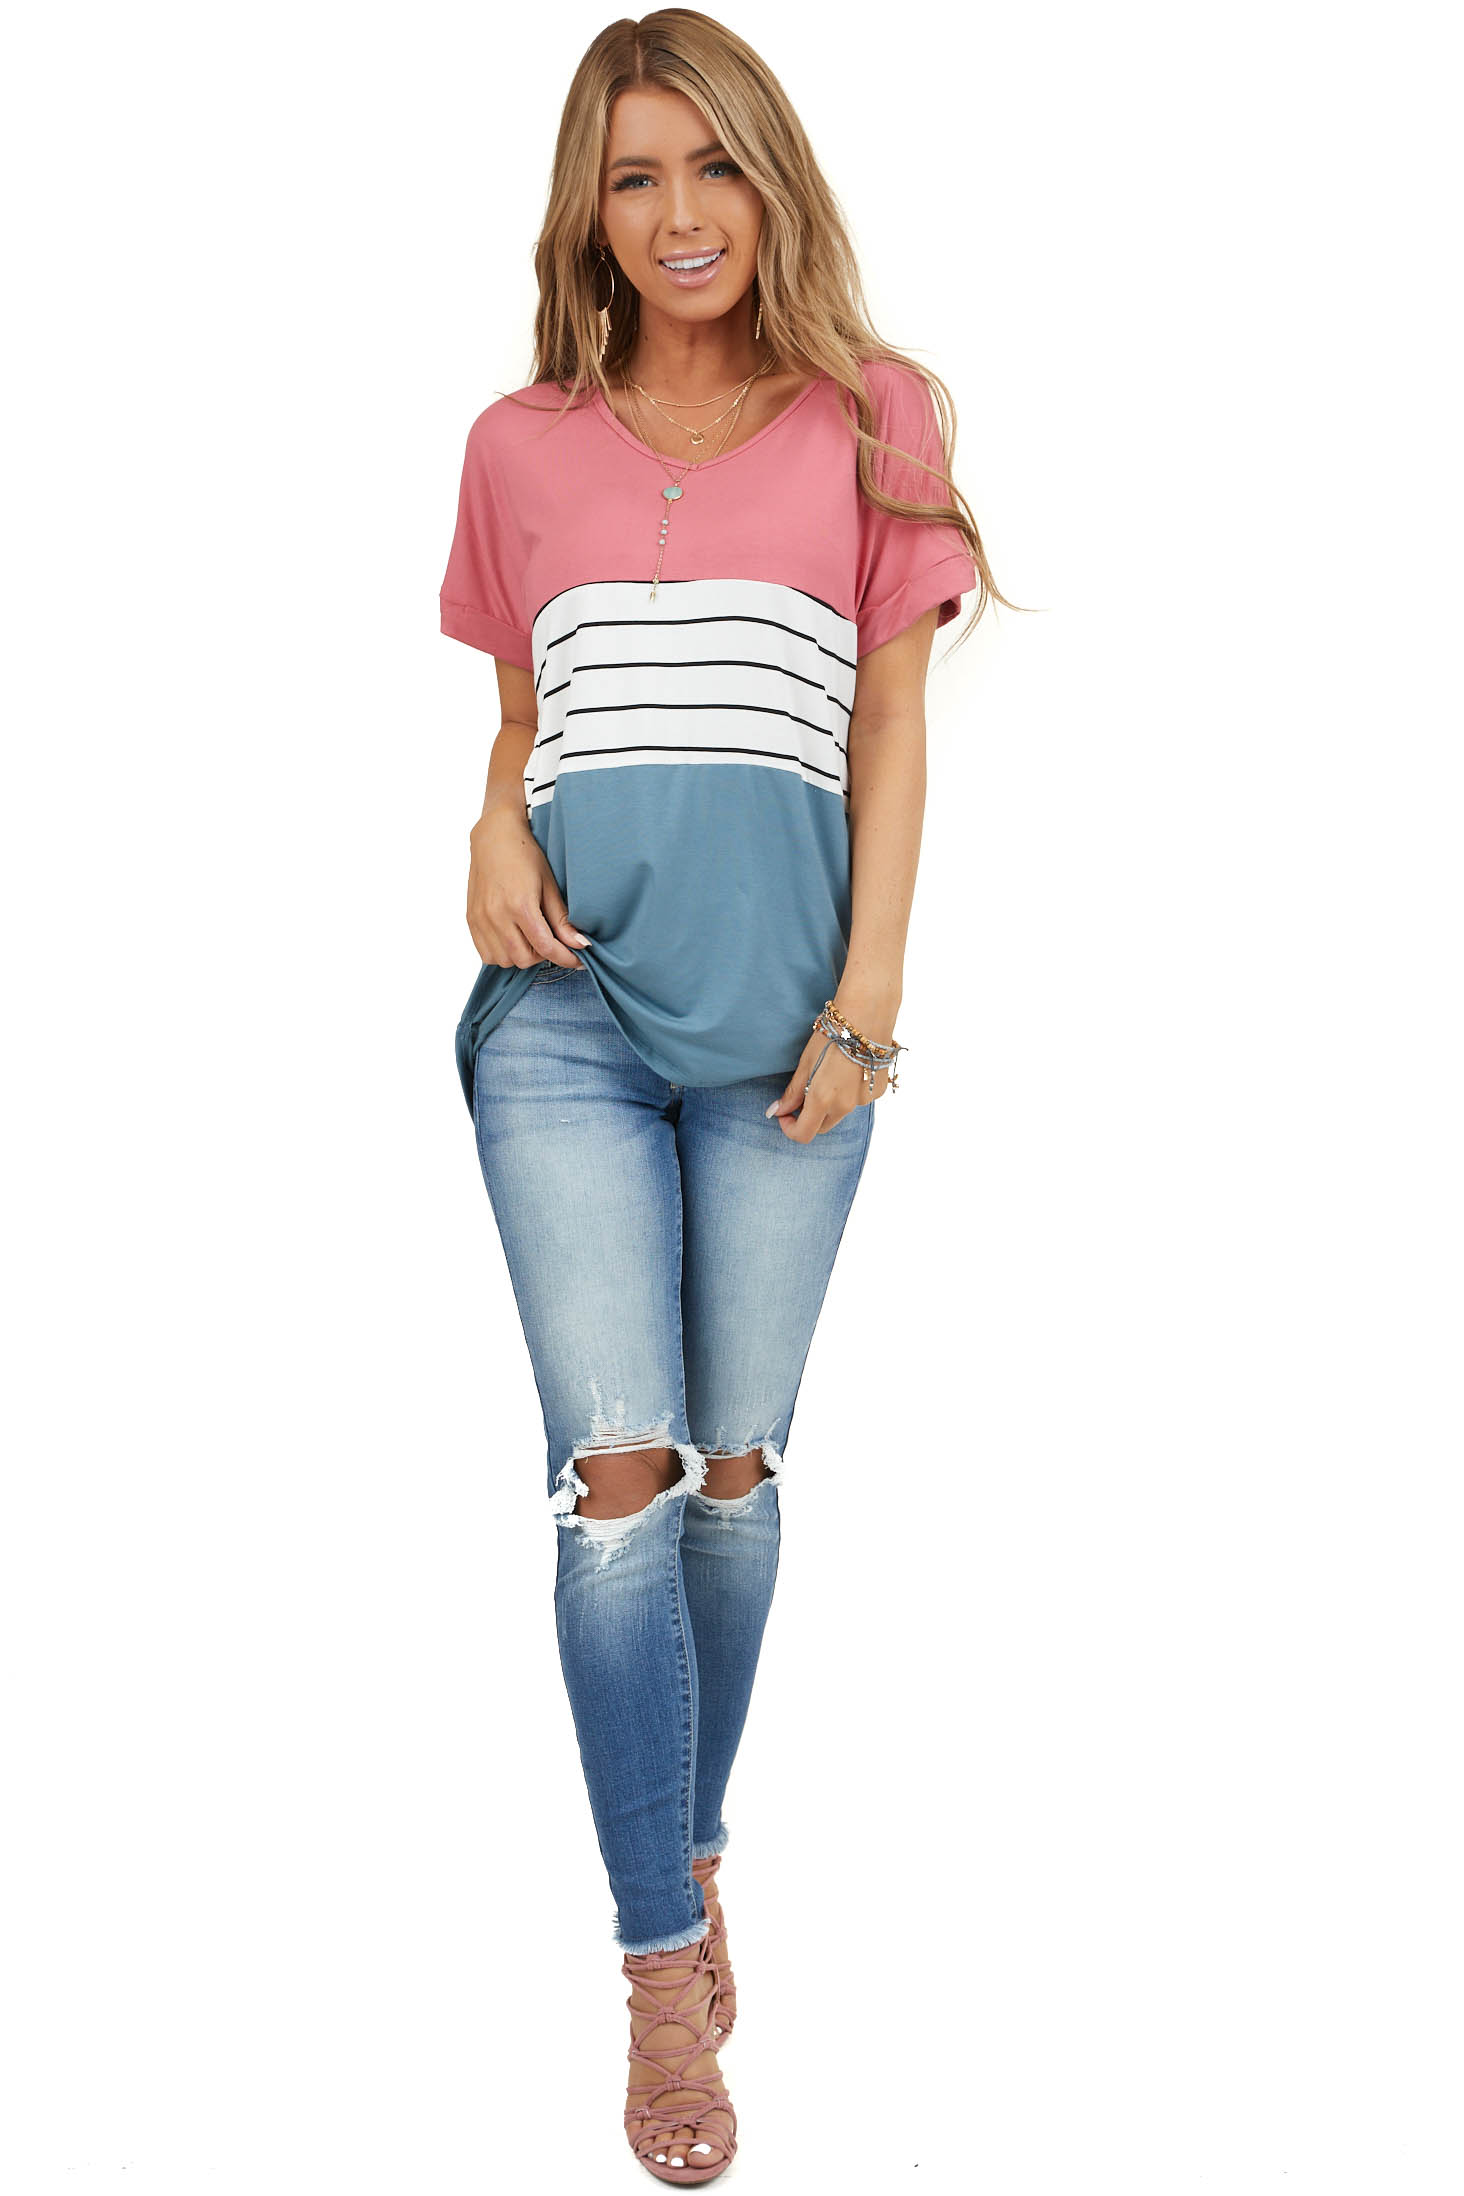 Deep Rose Colorblock Striped Top with Short Cuffed Sleeves